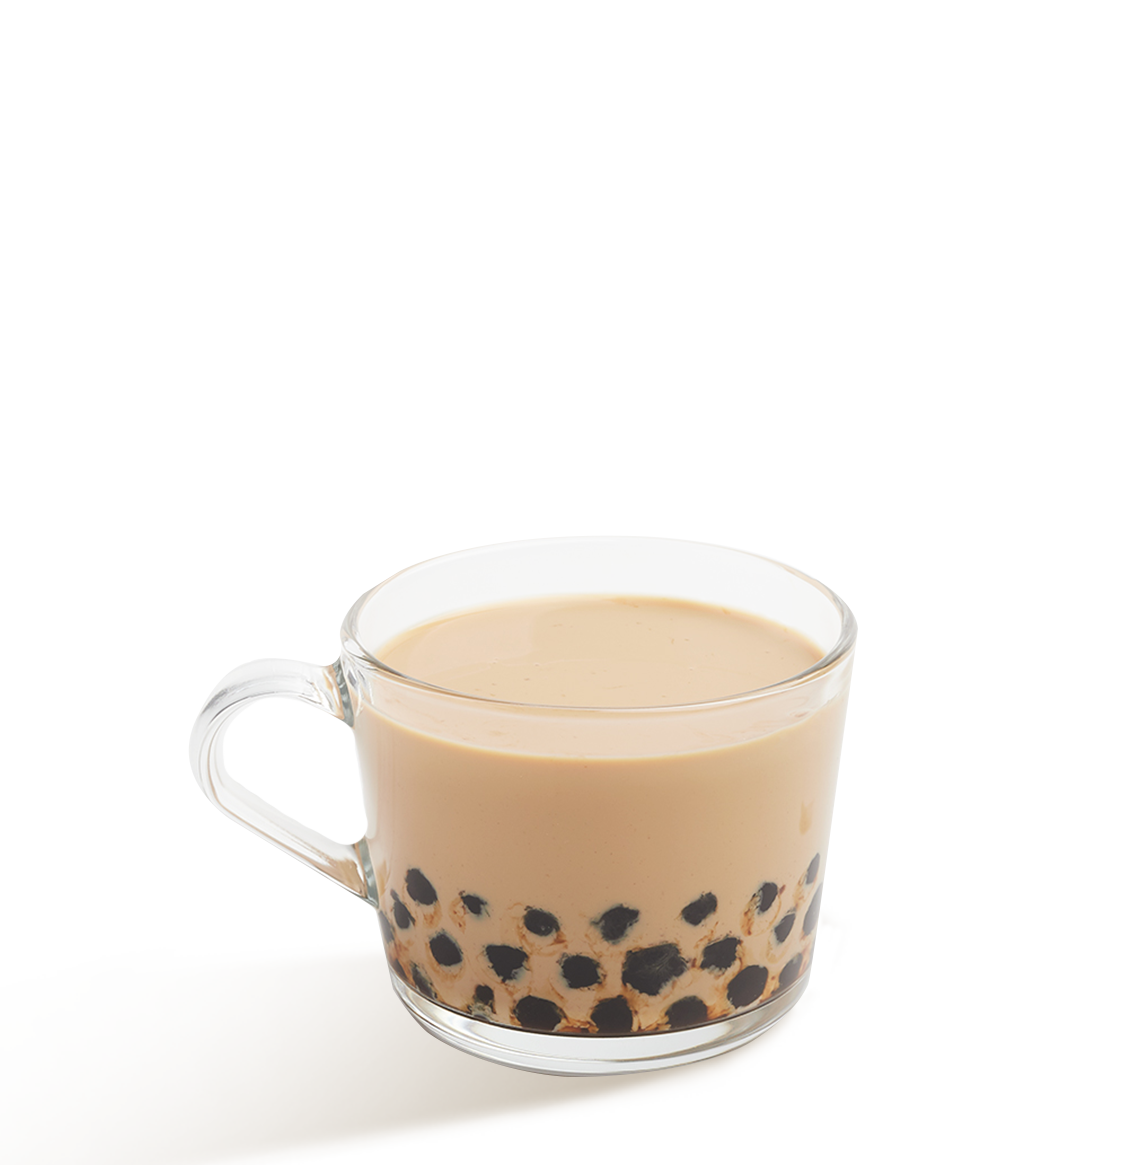 Red Phoenix Pearl Milk Tea (Hot)珍丸喜红茶奶(热)